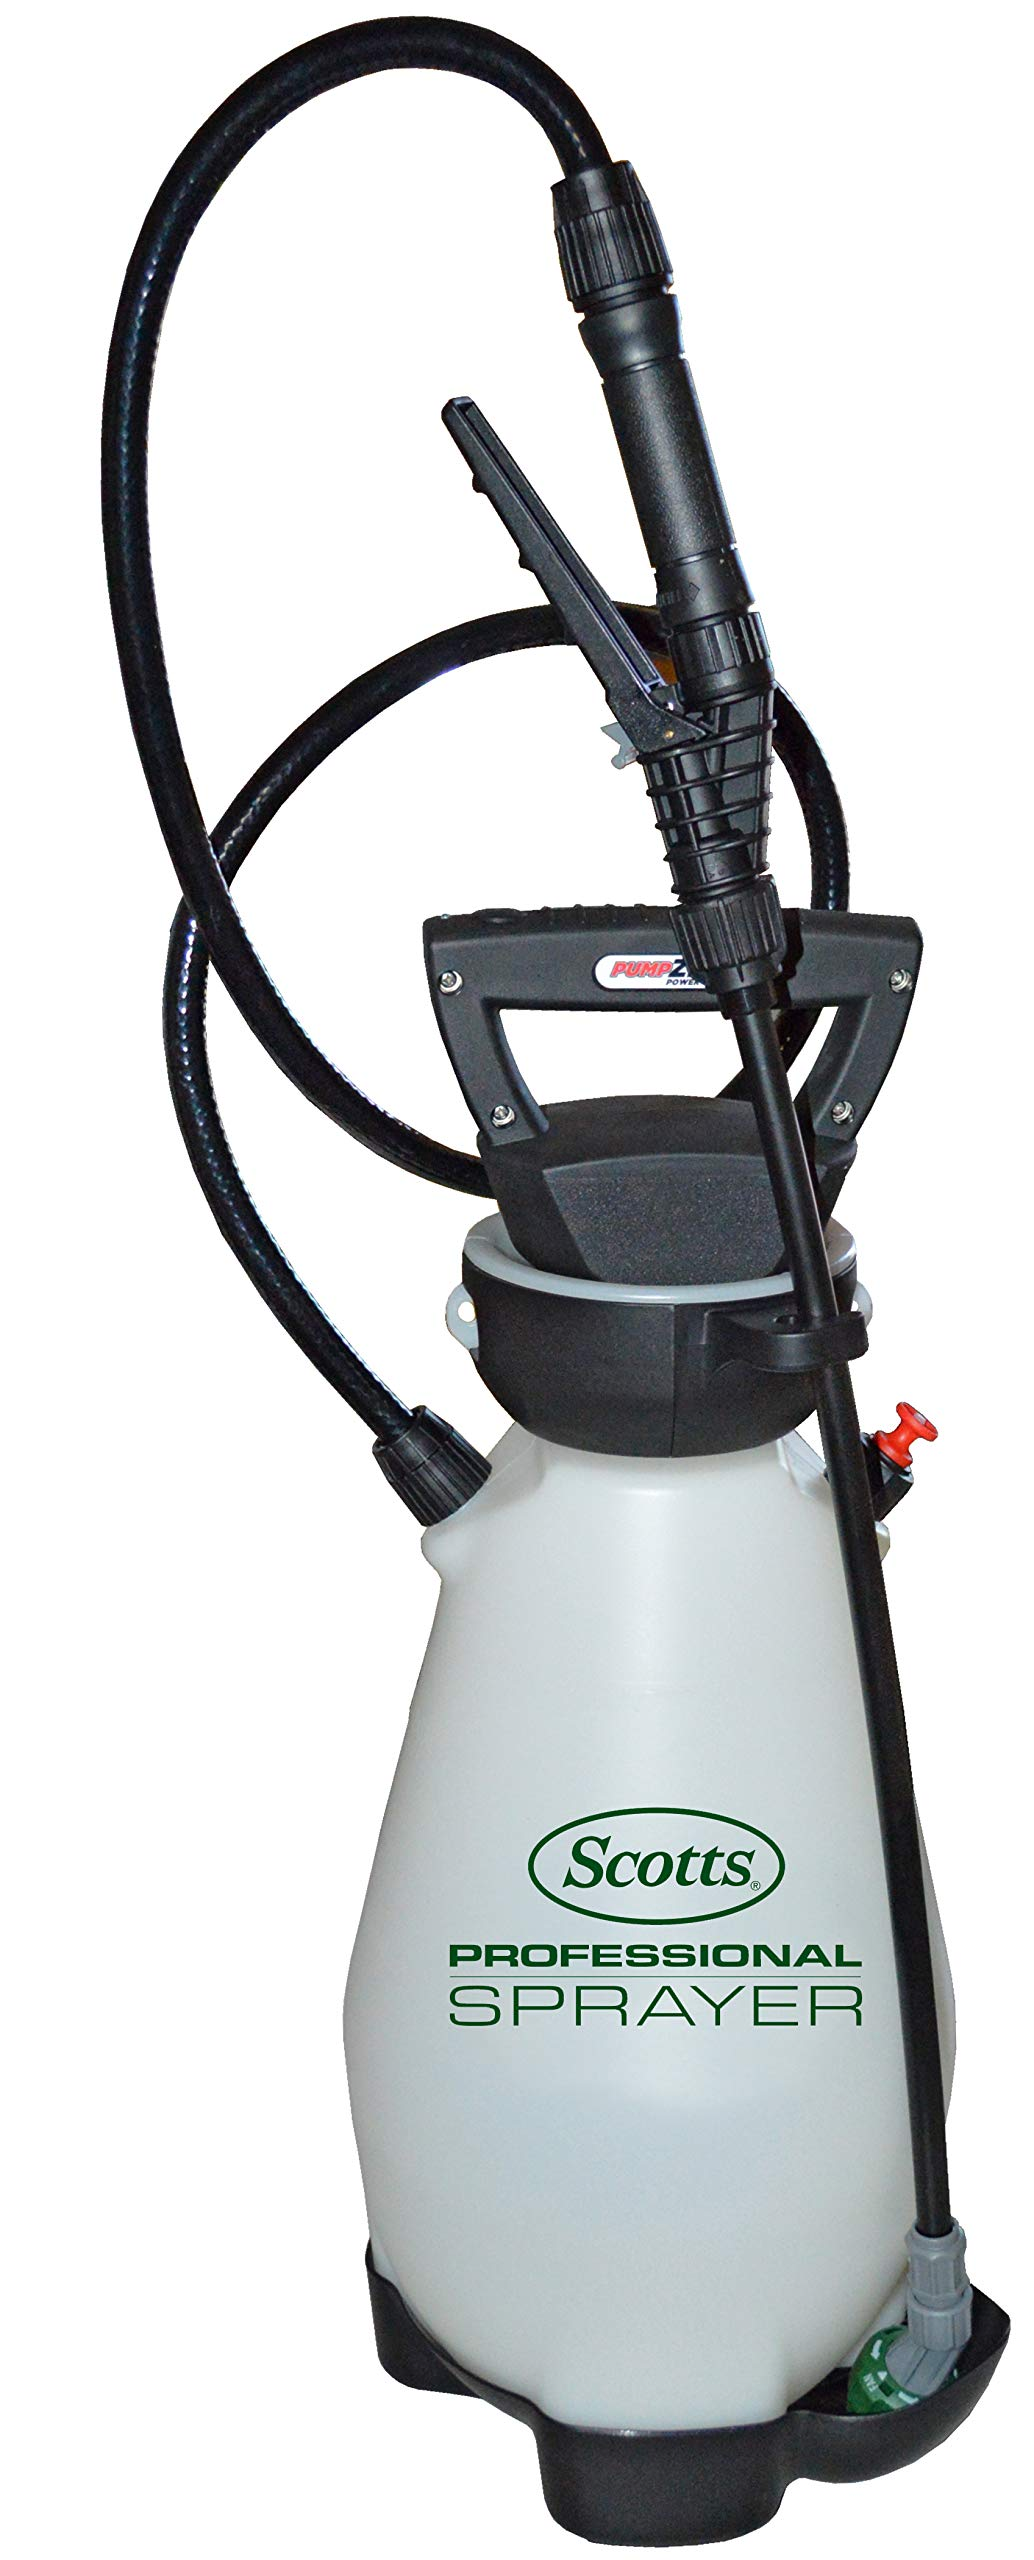 Scotts 190567 Lithium-Ion Battery Powered Pump Zero Technology Sprayer, 2 Gallon White by Scotts